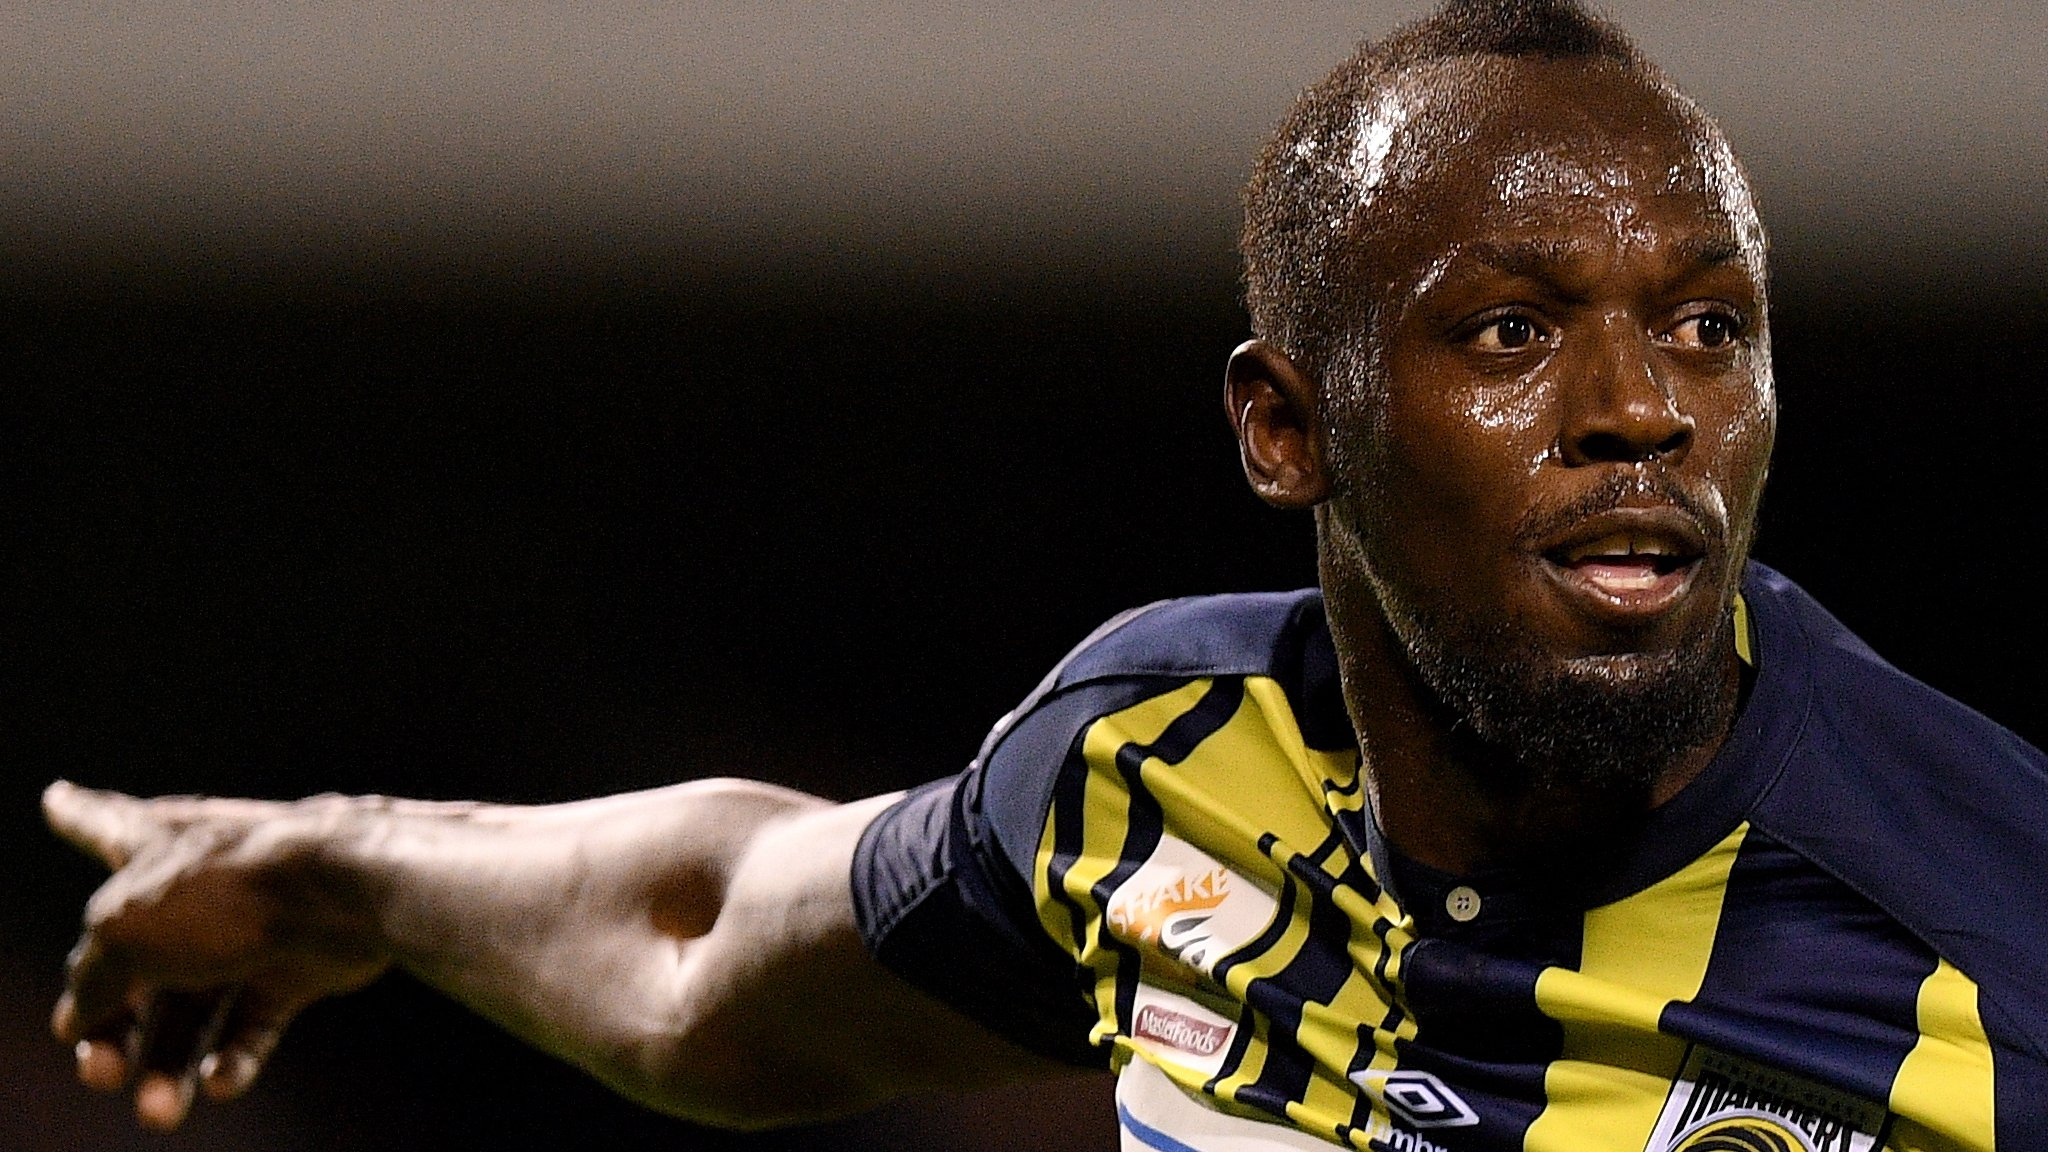 Usain Bolt questions why he is being drug tested as he is not yet a professional footballer